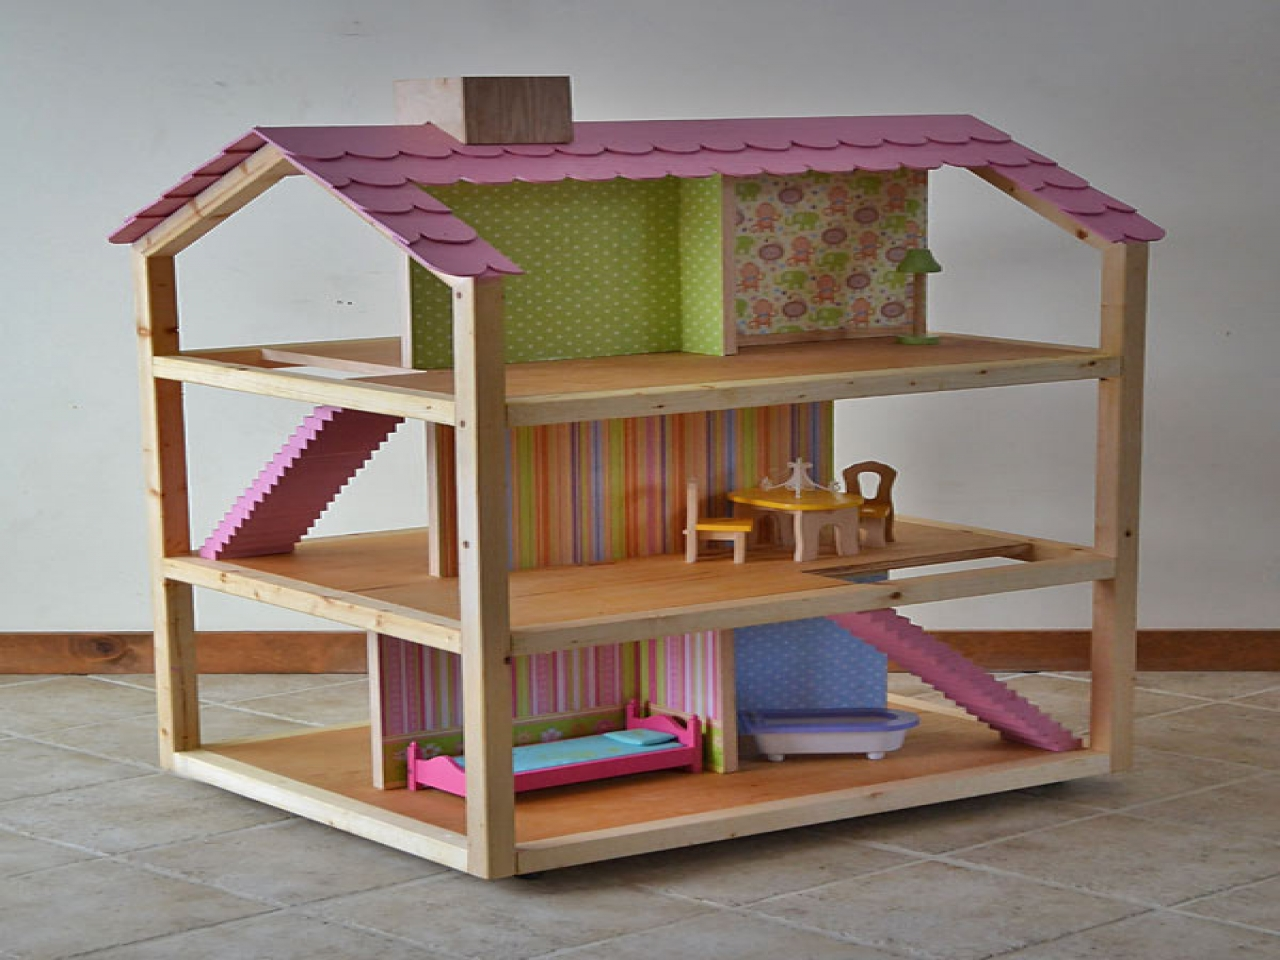 Diy Dollhouse Plans Diy Dollhouse Furniture Diy Home